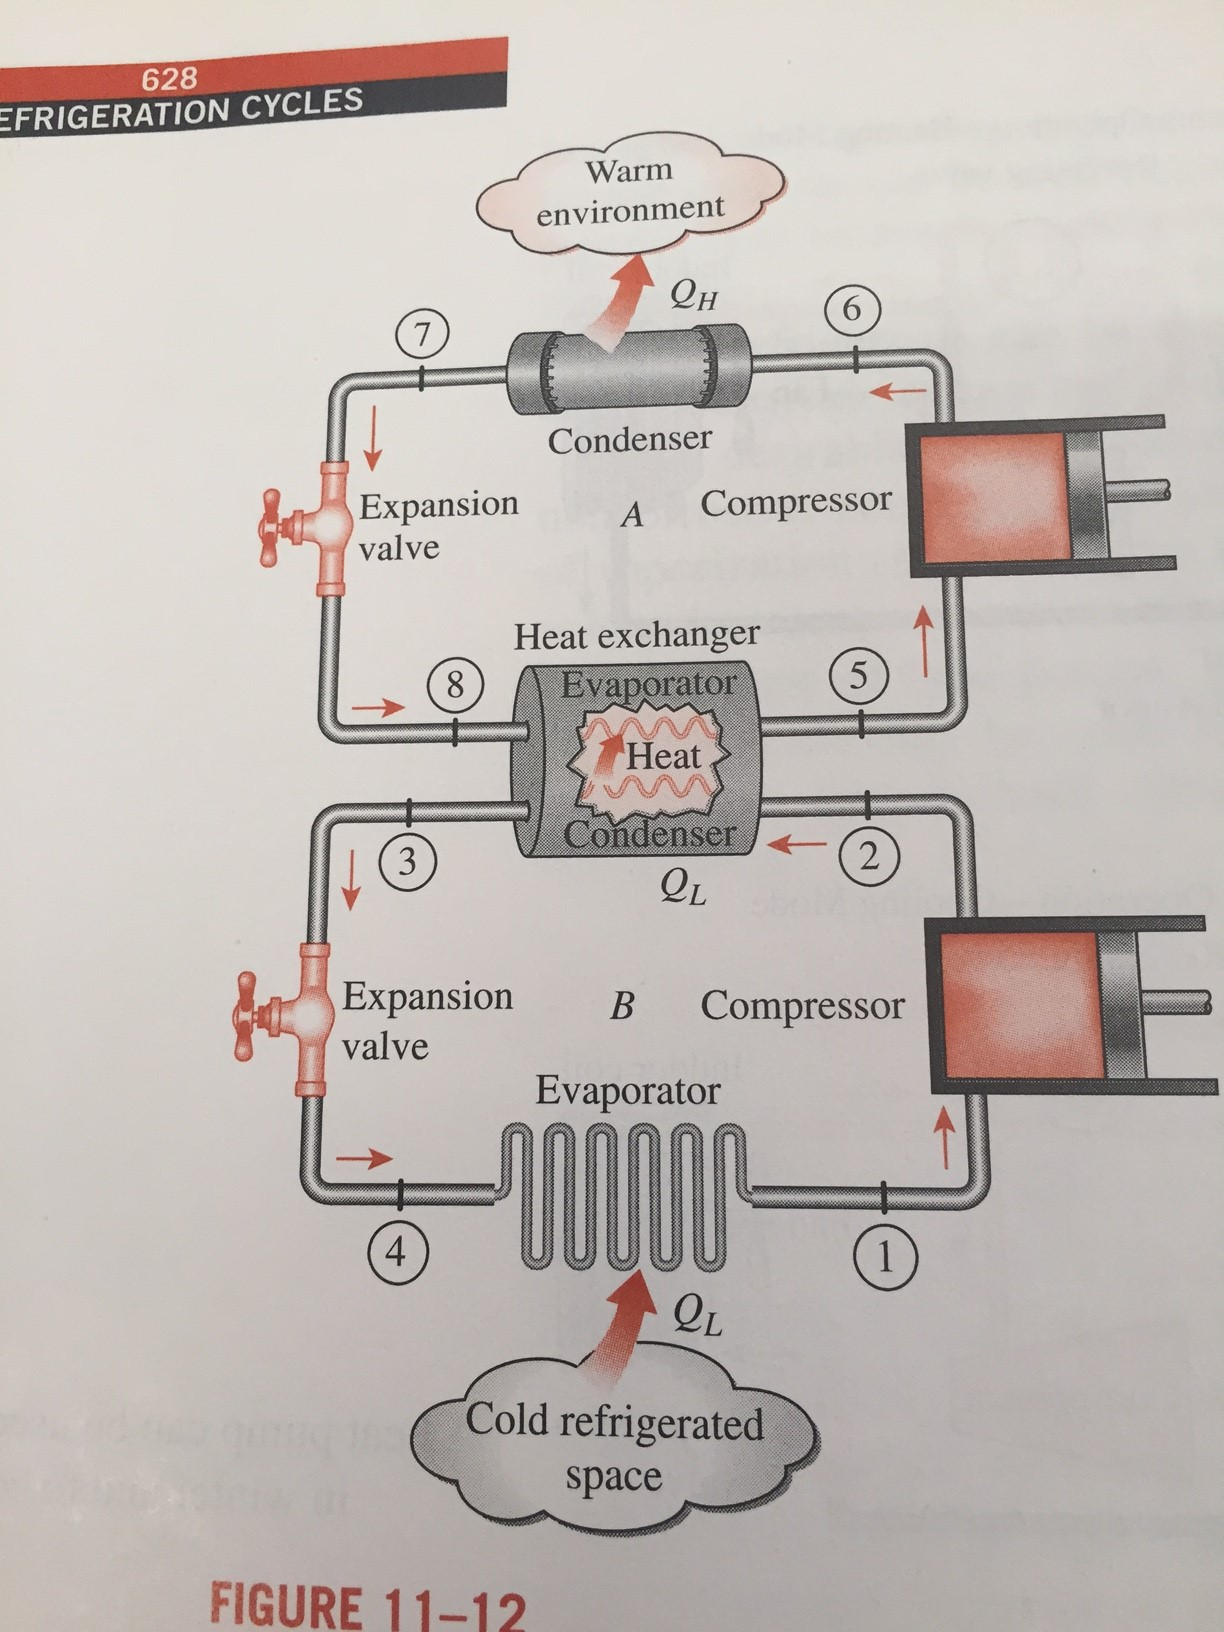 Consider A Two Stage Cascade Refrigeration System Cycle For Dummies